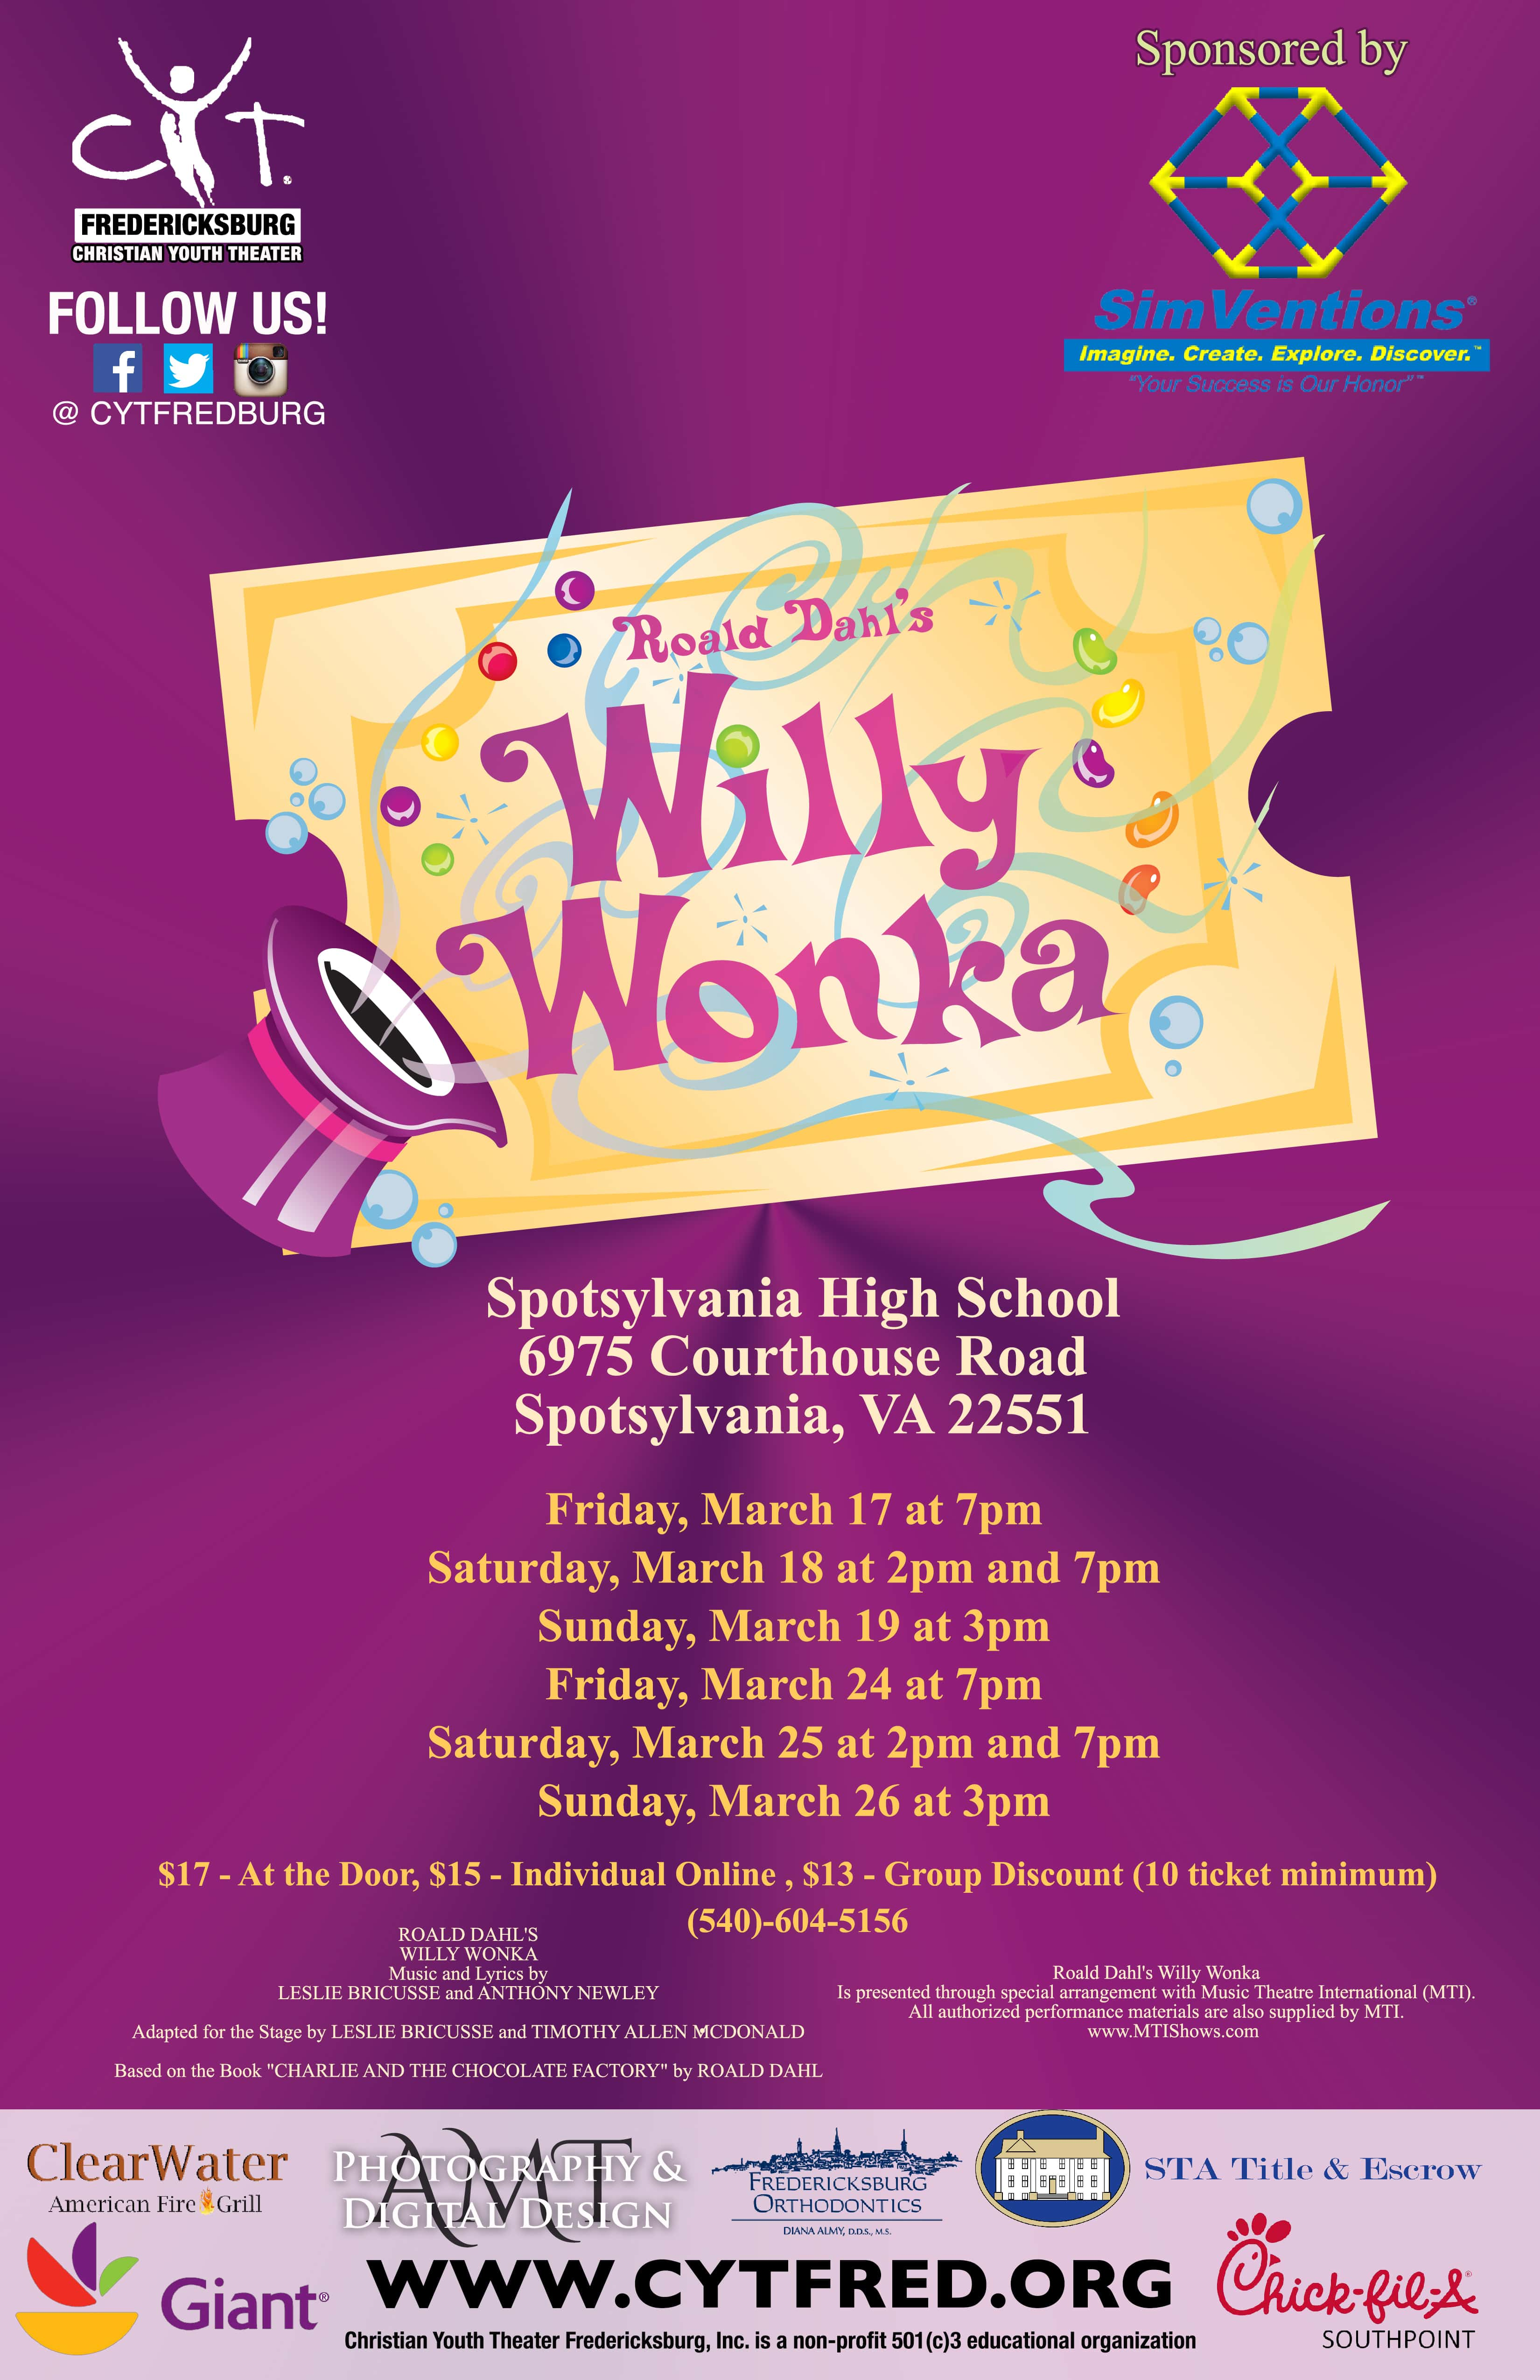 All events for CYT Fredericksburg Presents, Willy Wonka | B101.5 ...